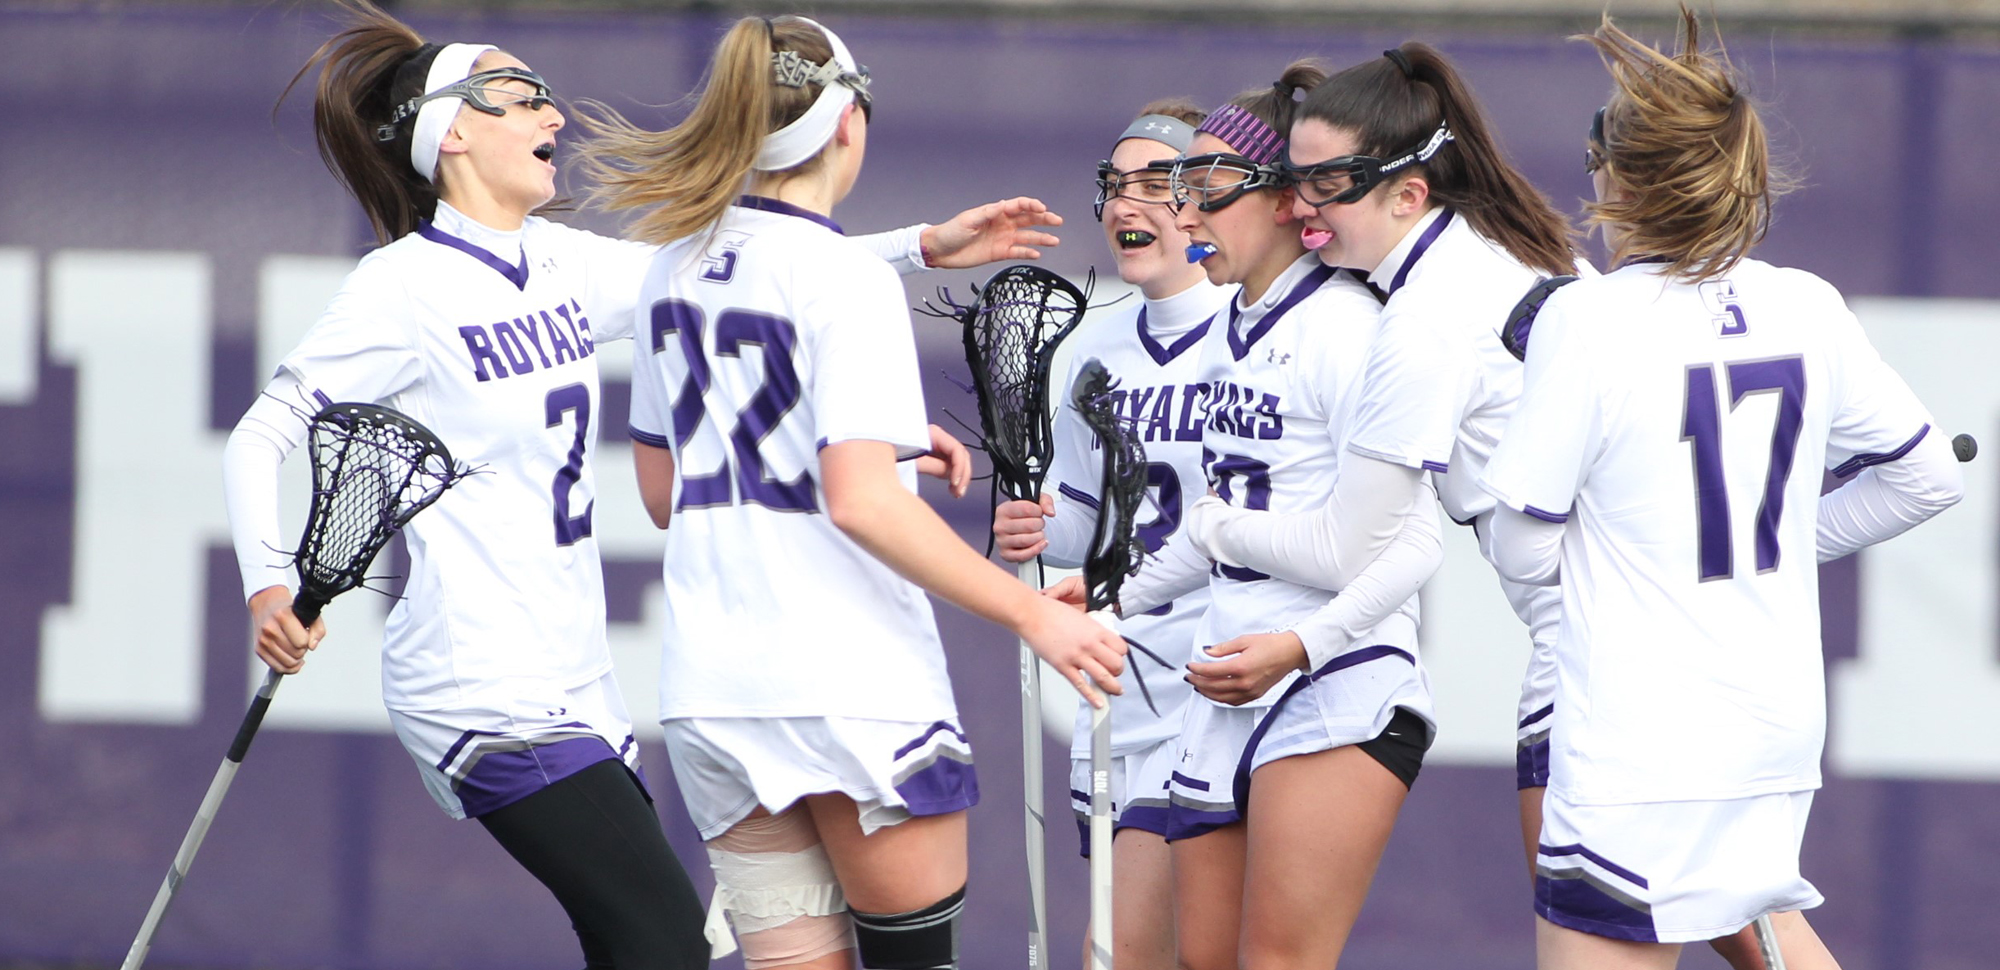 The University of Scranton women's lacrosse team finished 20th in the final IWLCA Division III Top 25 poll, which was released on Tuesday. © Photo by Timothy R. Dougherty / doubleeaglephotography.com